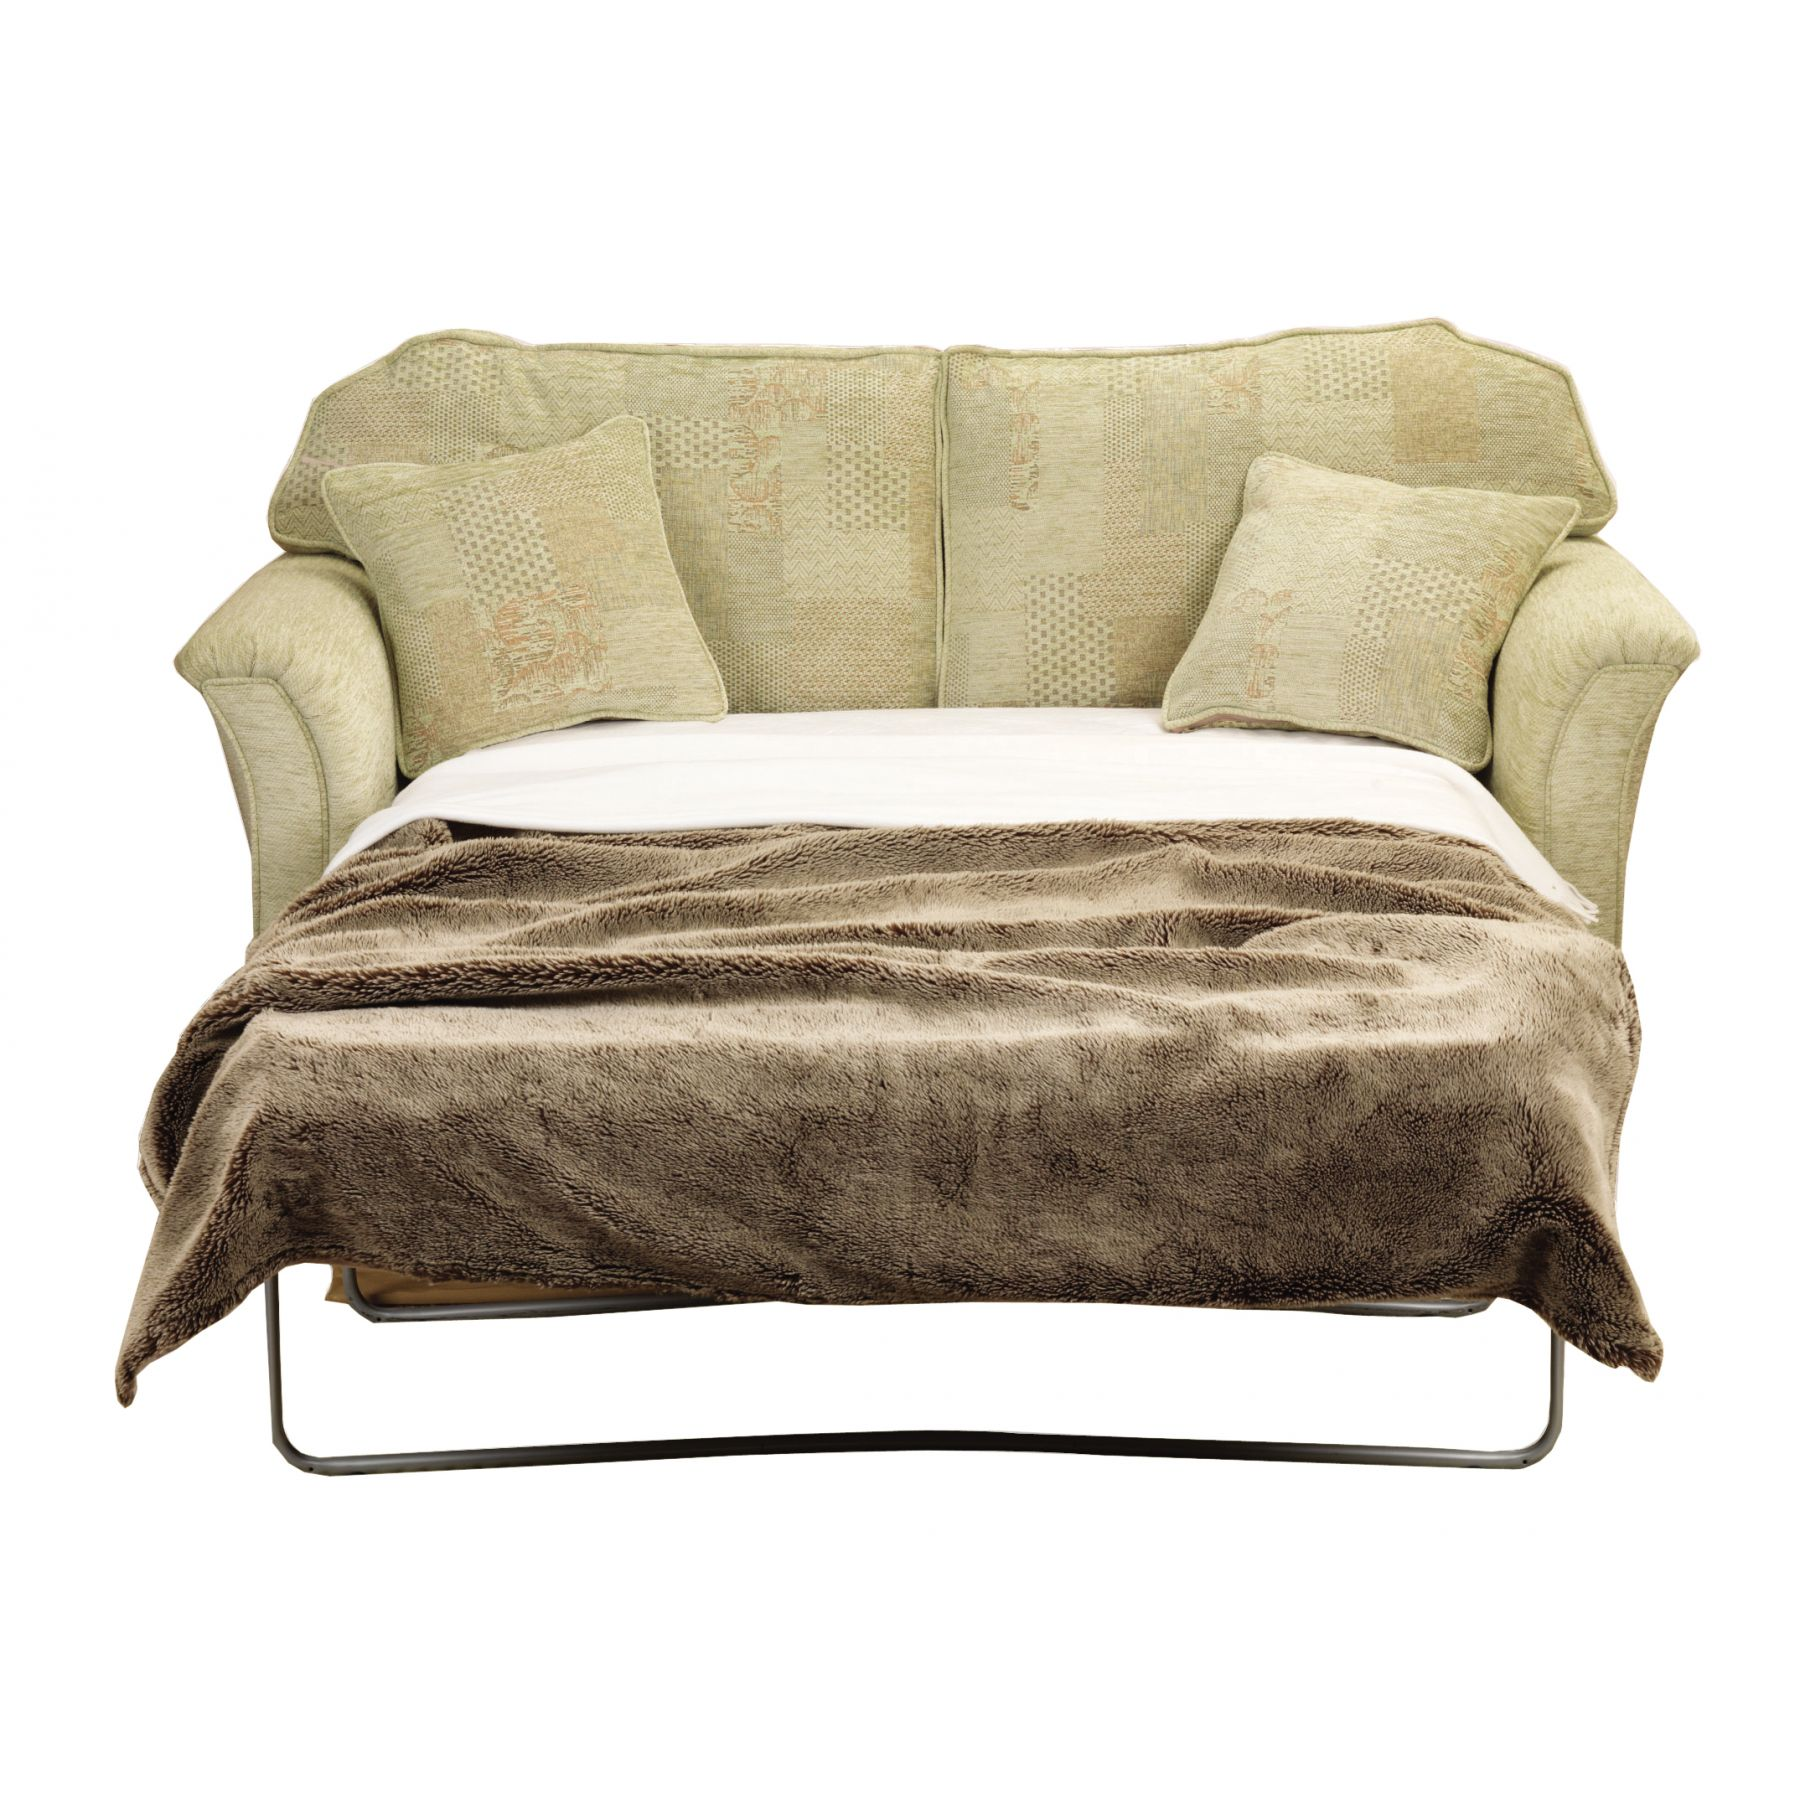 Convertible loveseat sofa bed with chaise couch sofa for Furniture sofa bed